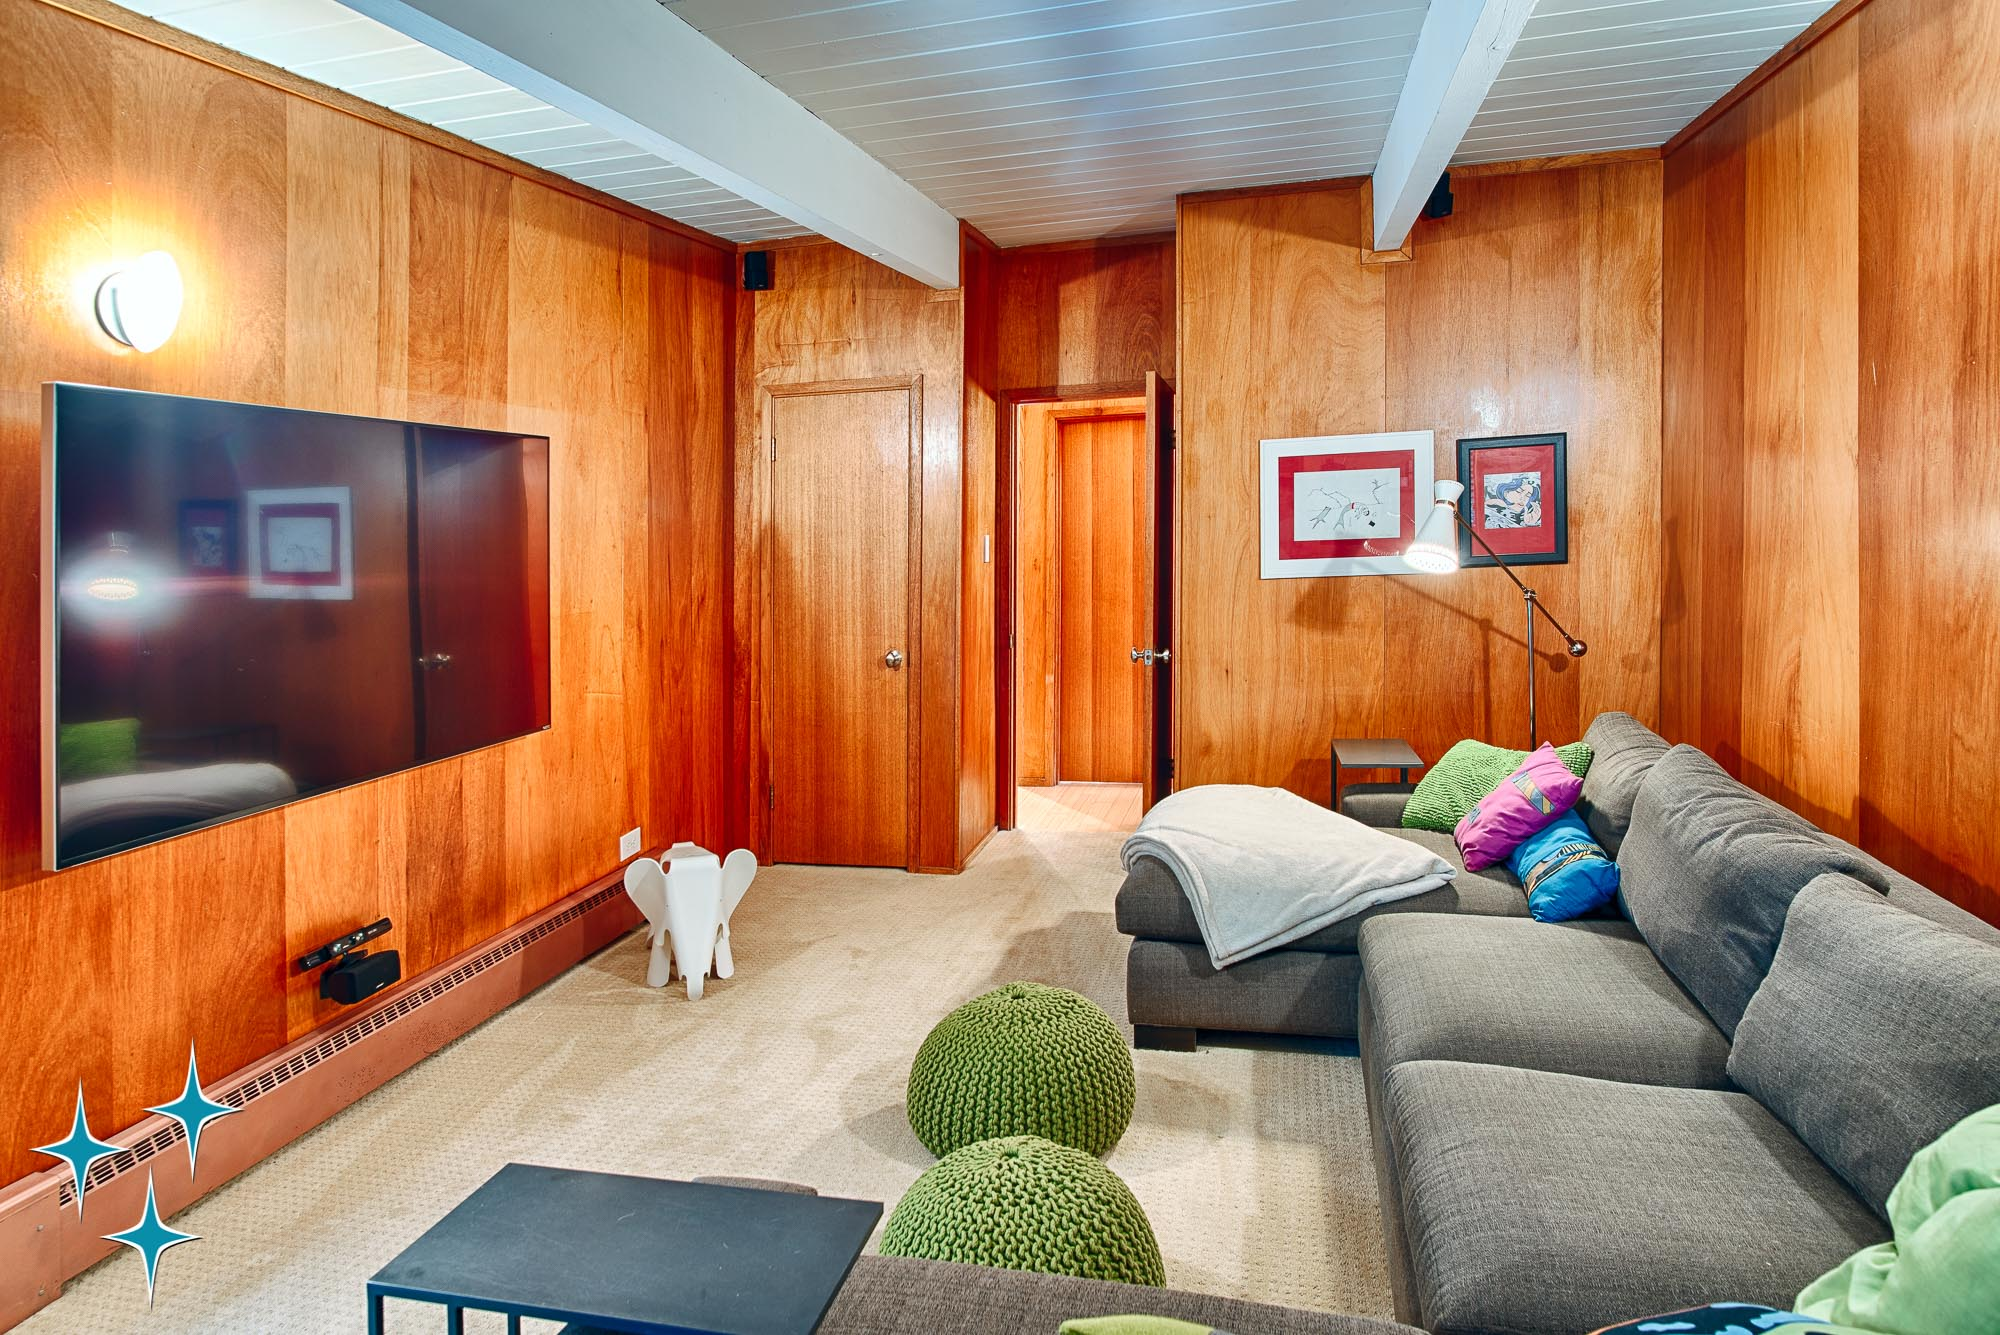 The wood-paneled media room in 4920 E Vassar Lane in Dahlia Acres, Denver. Designed by Frenchie Gratts and offered by Adrian Kinney, Broker Associate, Resident Realty South Metro